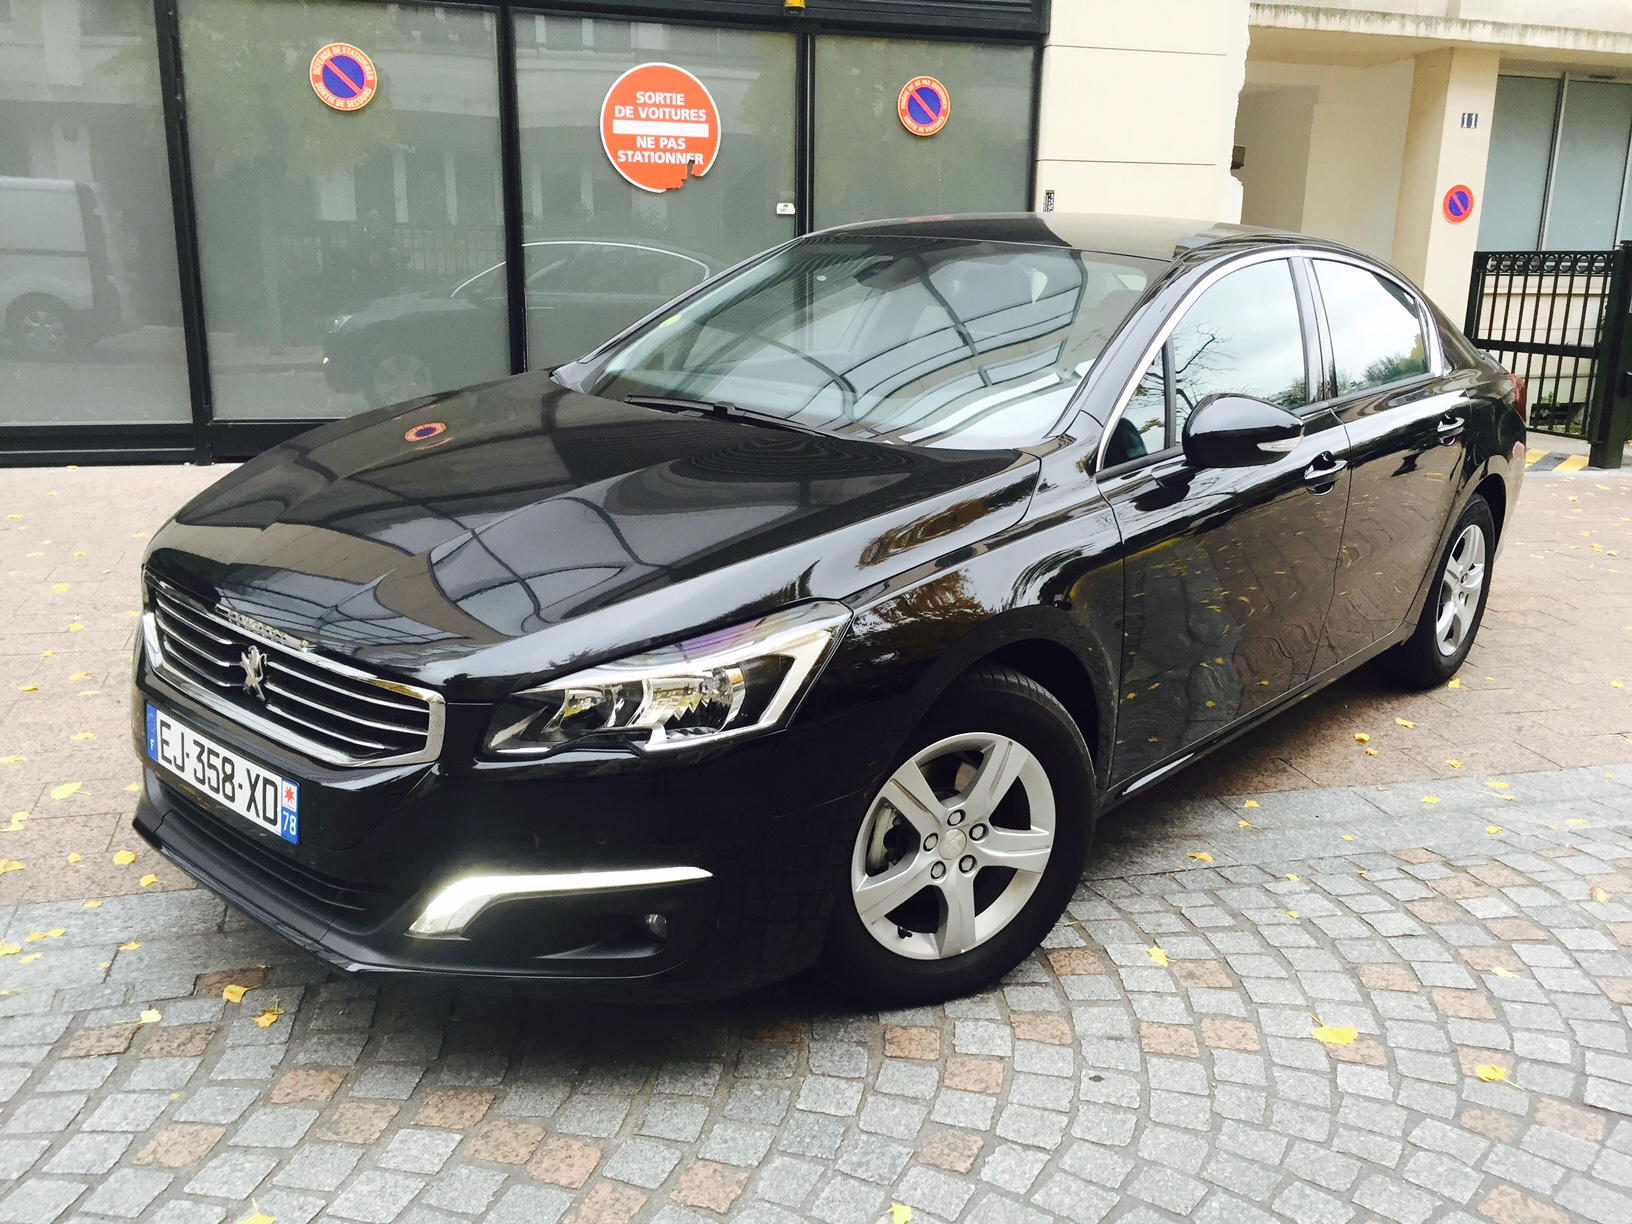 peugeot 508 active business eat6 2017 noir   voiture en